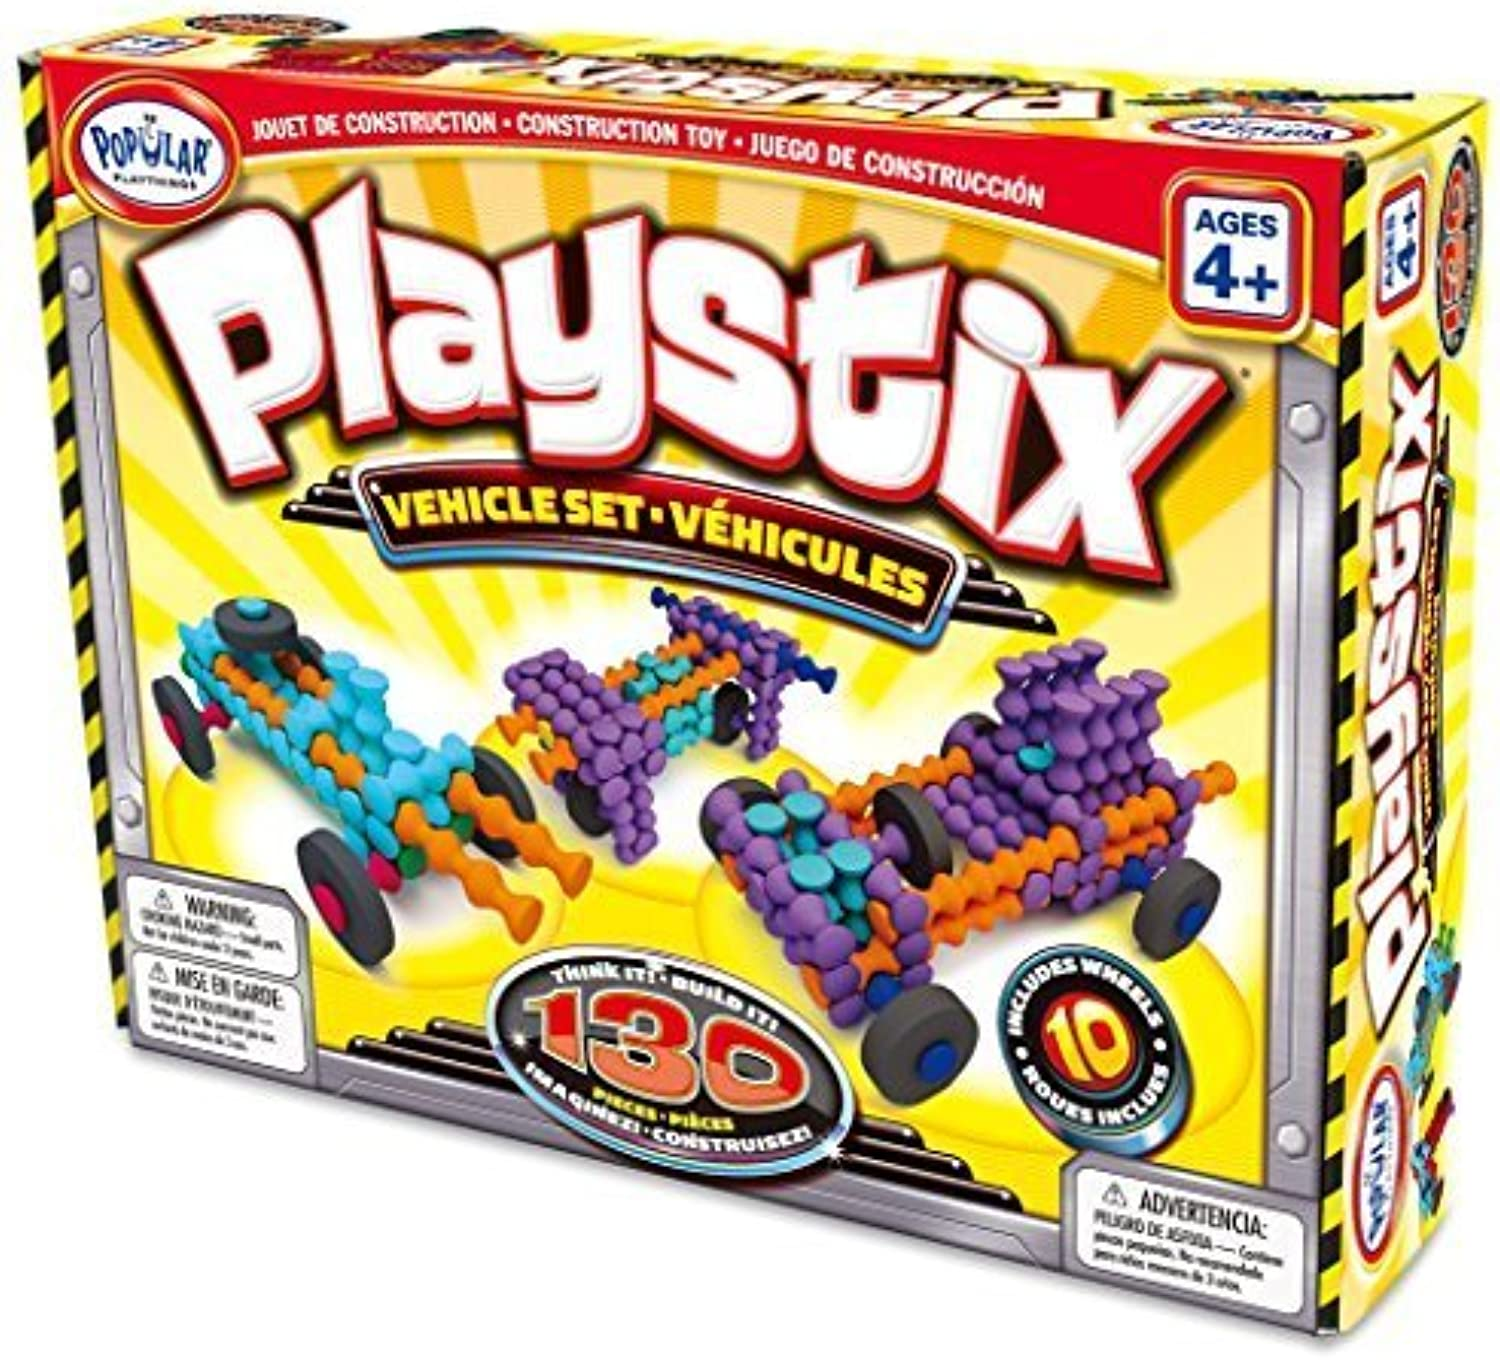 Popular Playthings Playstix Vehicles Set (130 pieces) by Popular Playthings